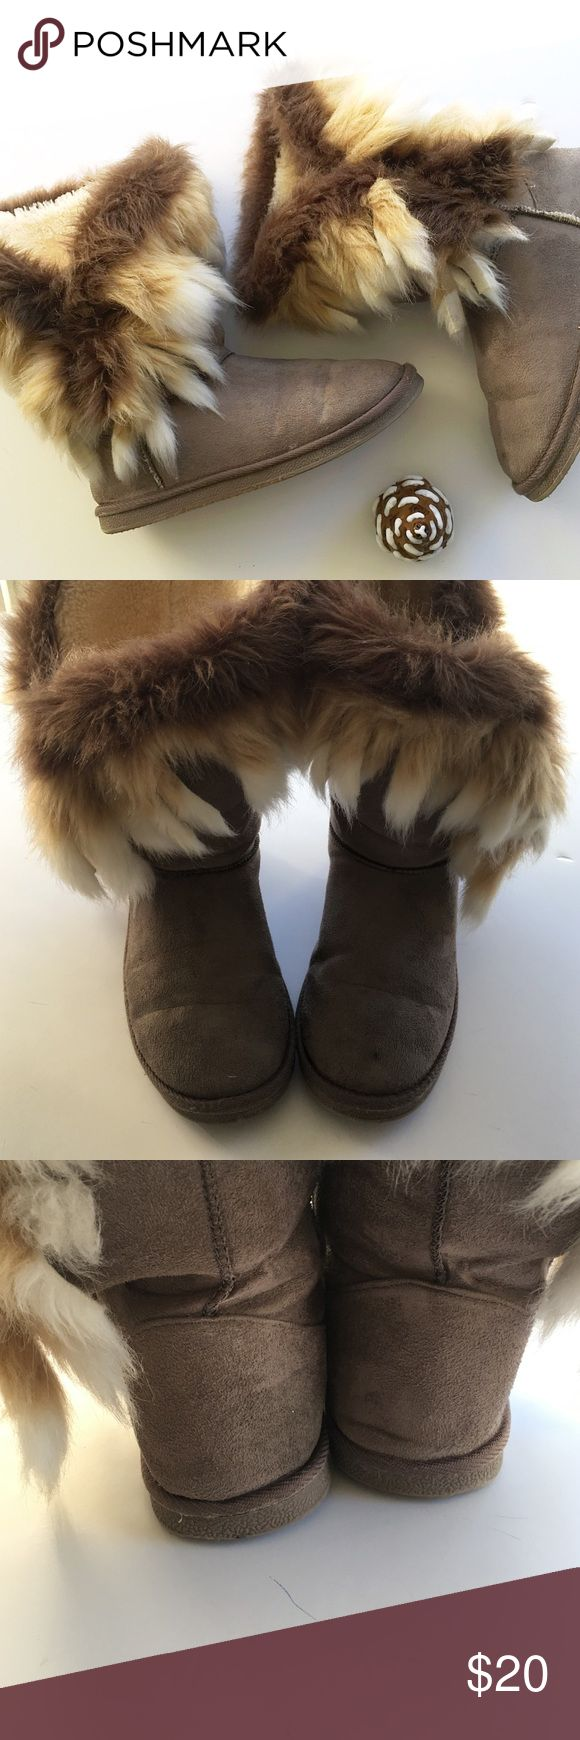 Fuzzy boots excellent used condition  measurements upon request  NO TRADING  BUNDLE and get 30% off any two items  any other questions comment below JustFab Shoes Winter & Rain Boots